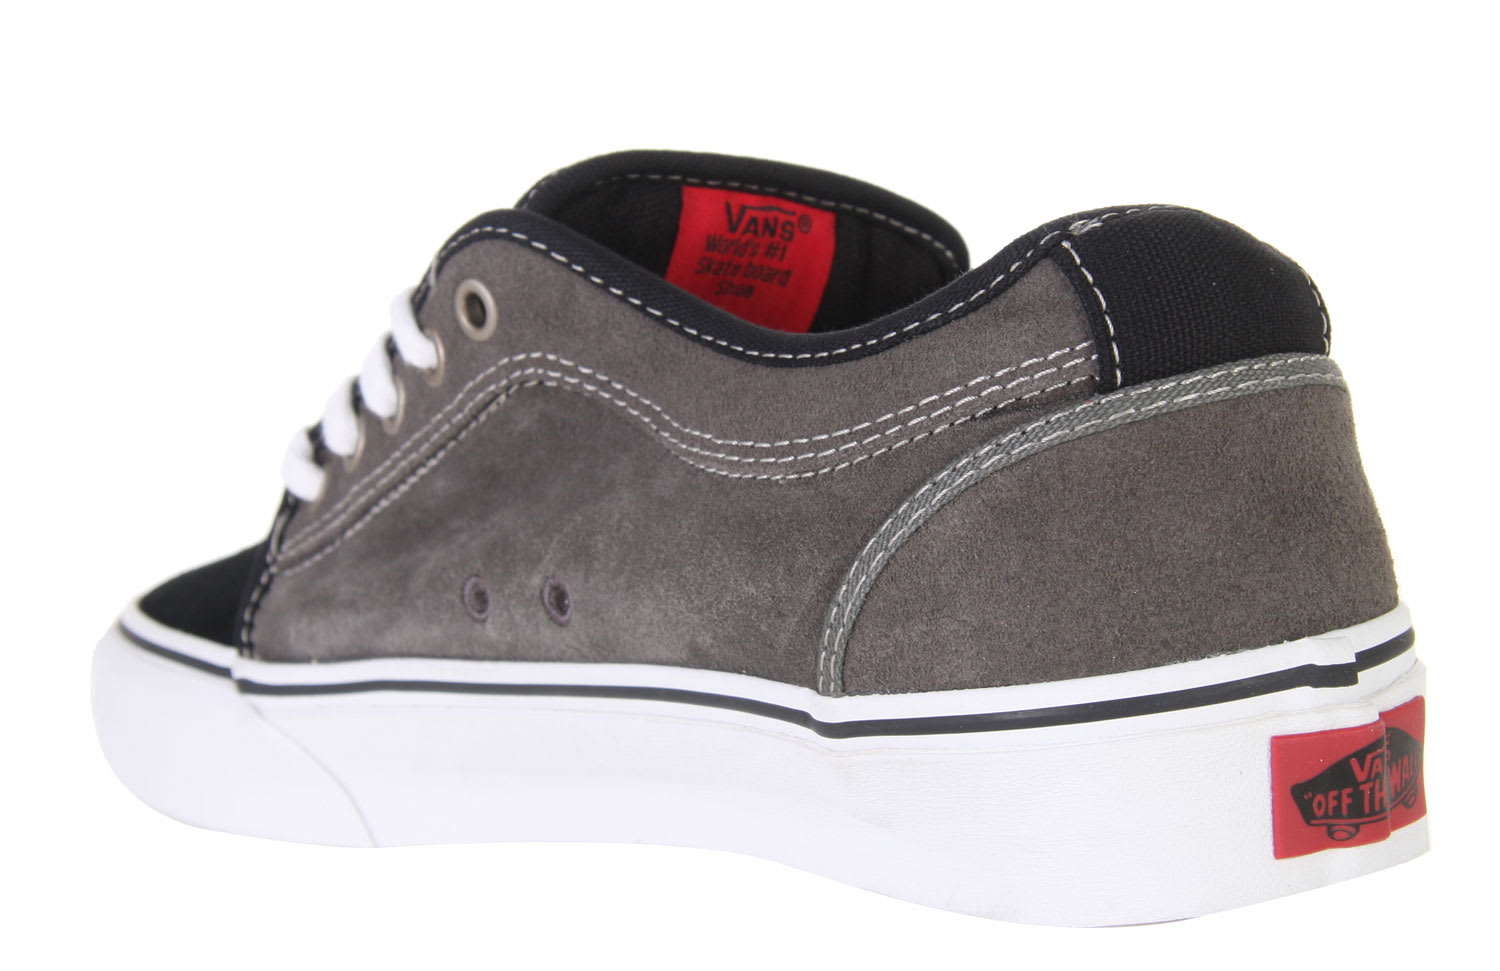 On Sale Vans Chukka Low Skate Shoes up to 75% off